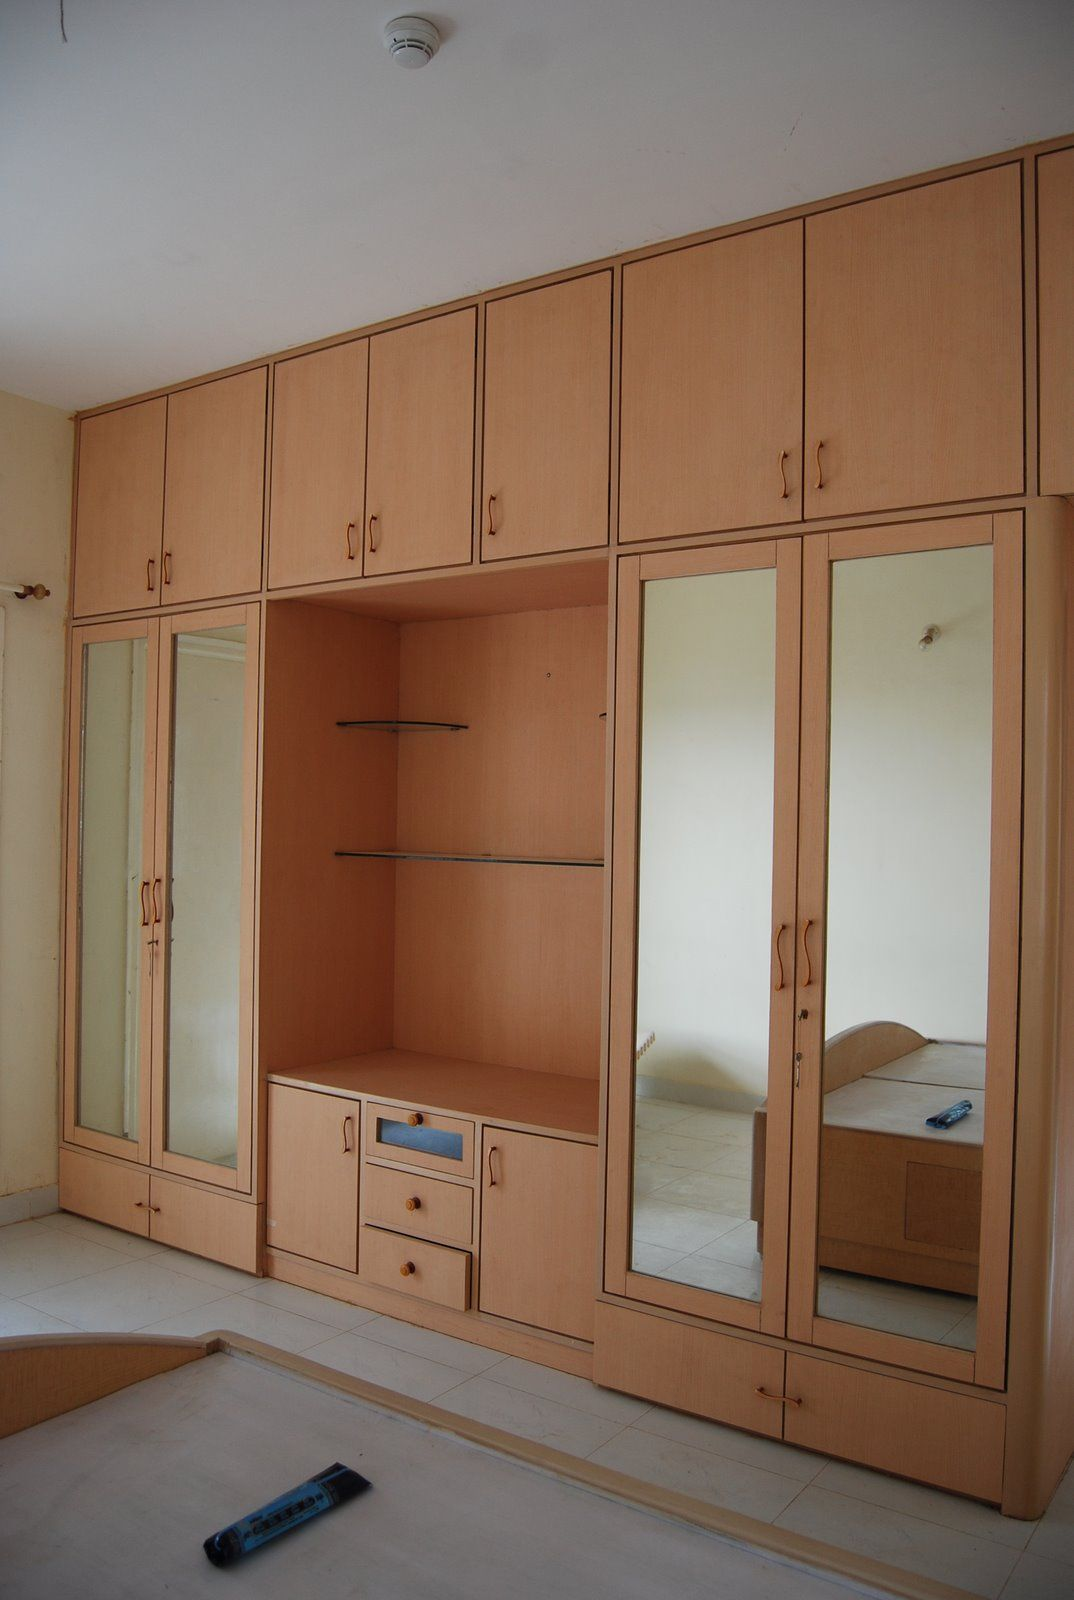 Bedroom Designs With Wardrobe bedroom wardrobe design playwood wadrobe with cabinets also